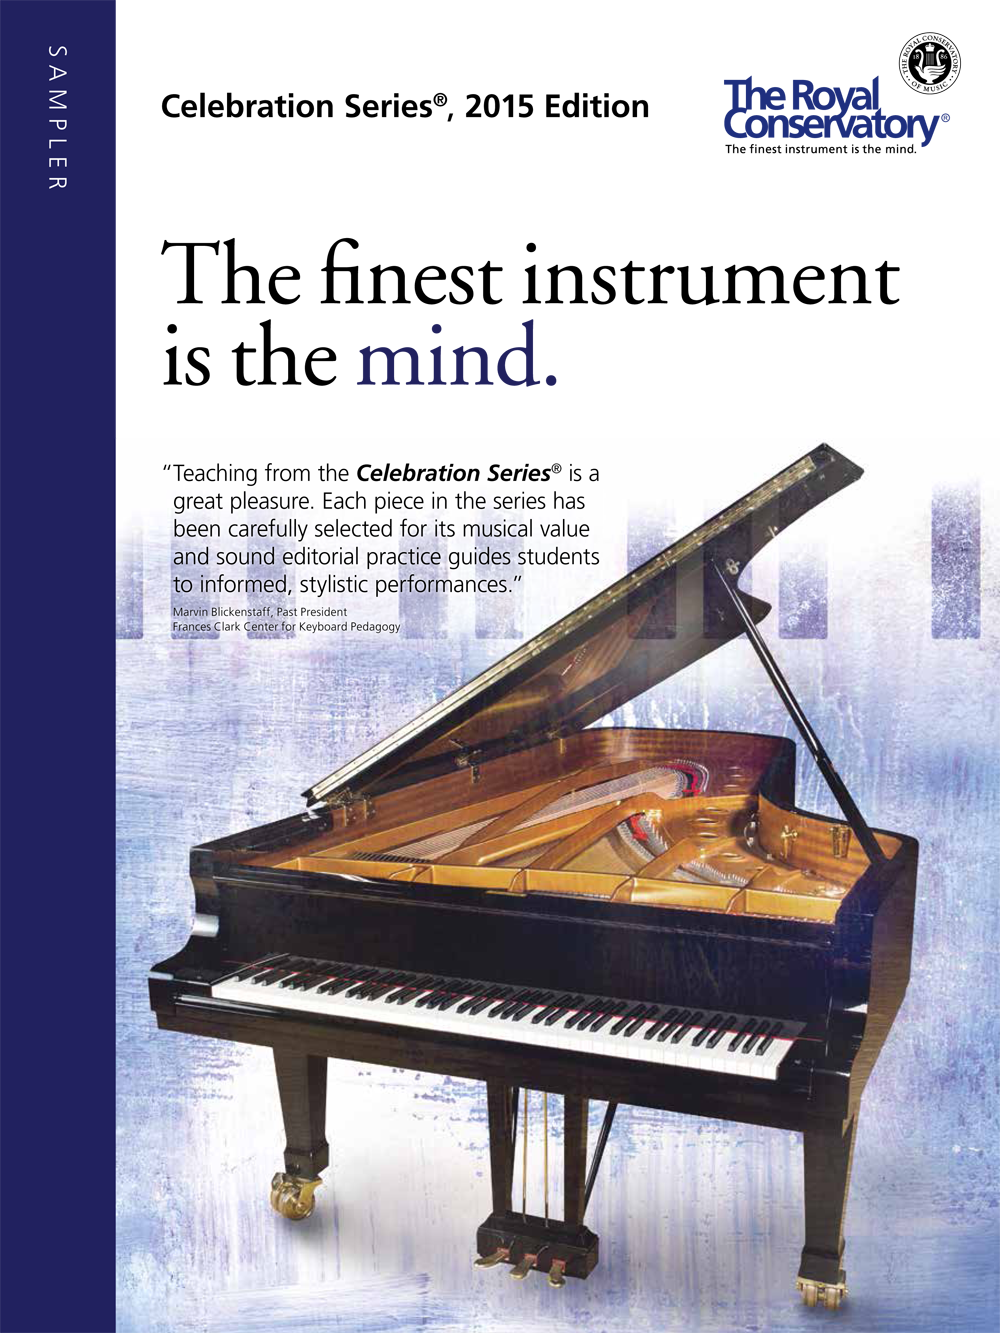 RCM_PianoSampler_Cover2016-new.png